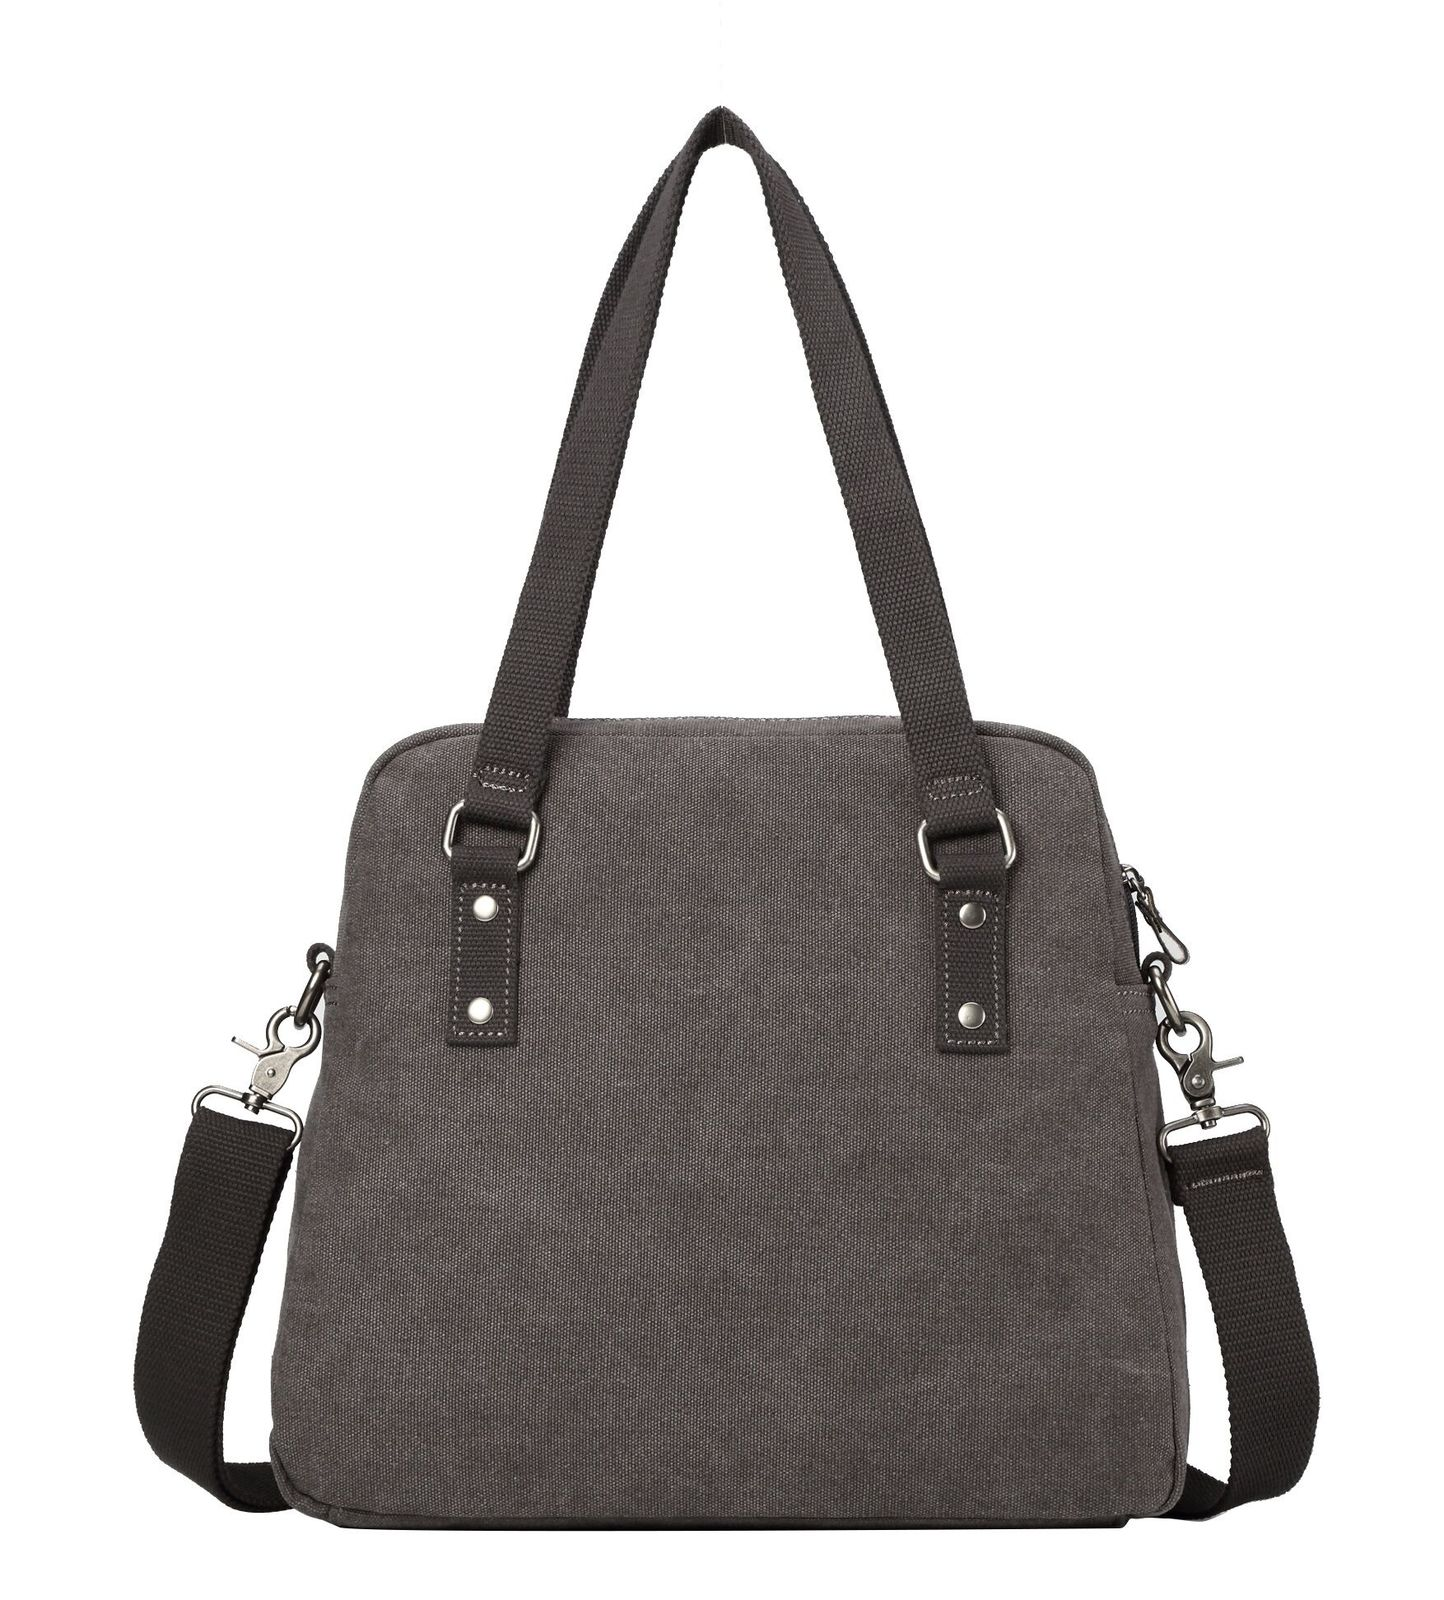 Troop London: Metro Shoulder Bag - Black image